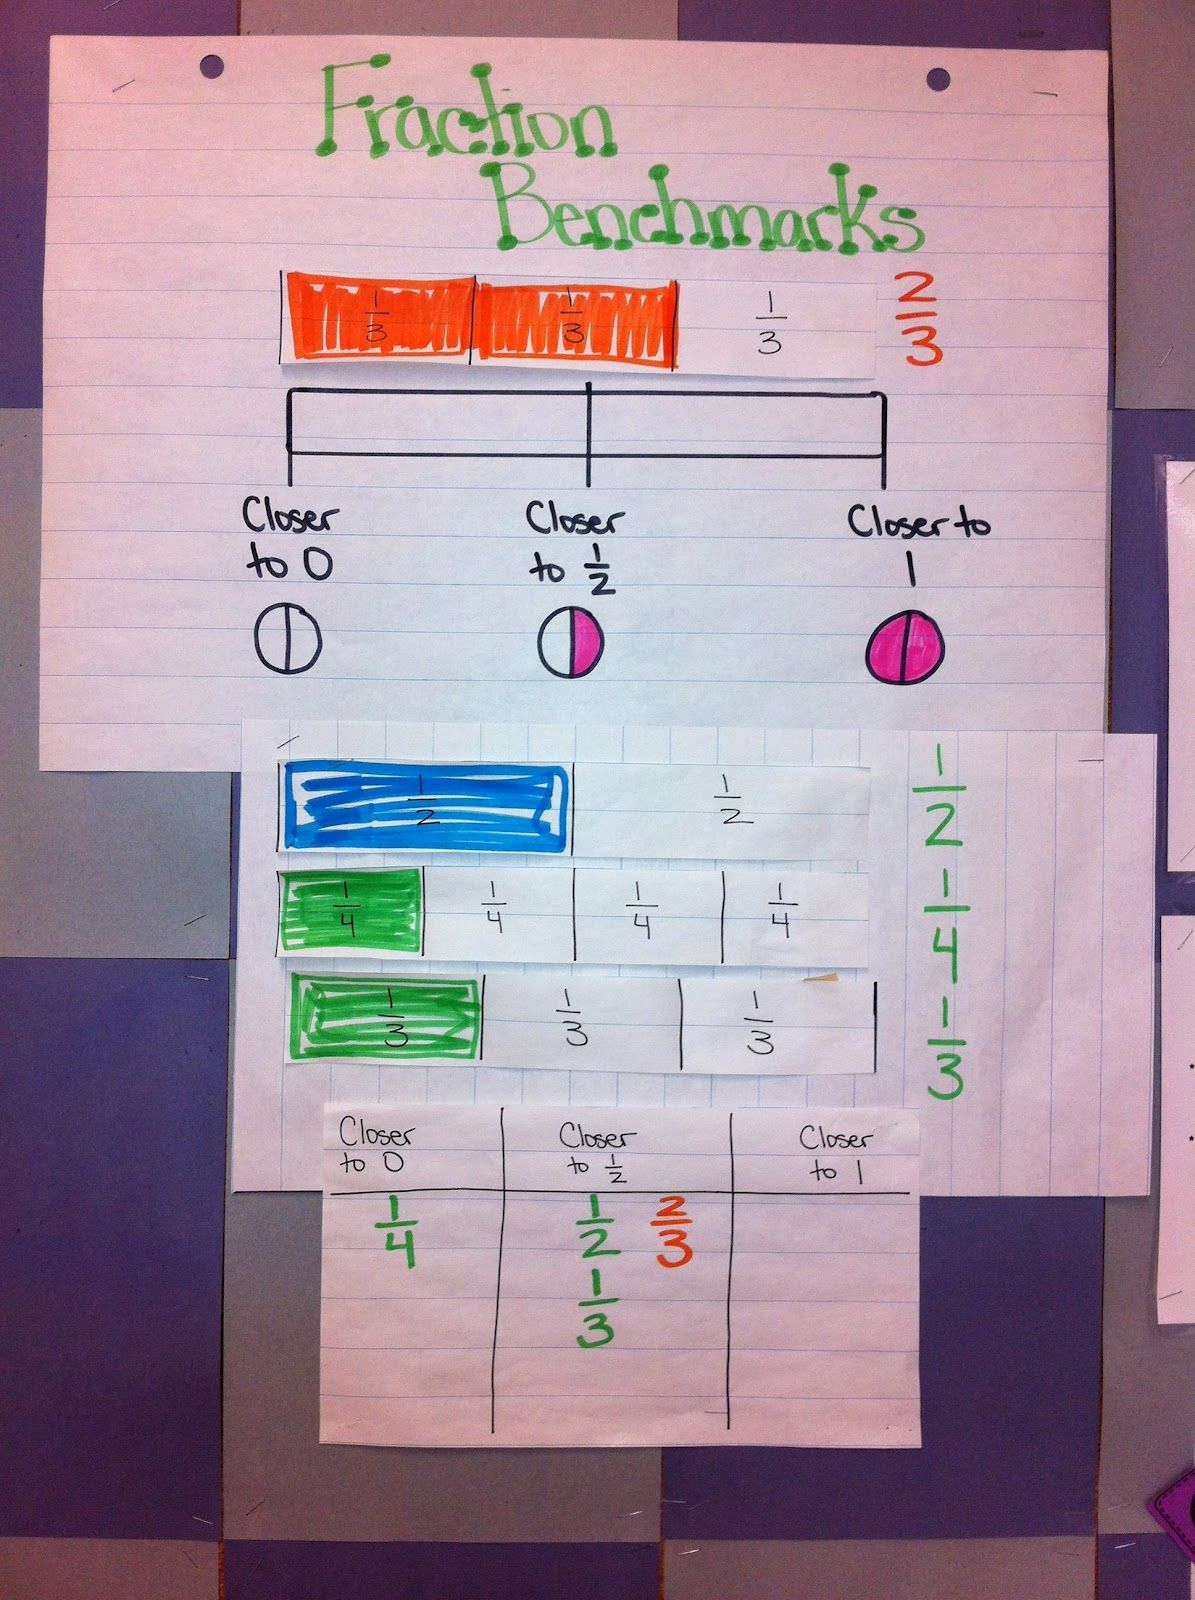 Fraction Benchmarks Anchor Charts